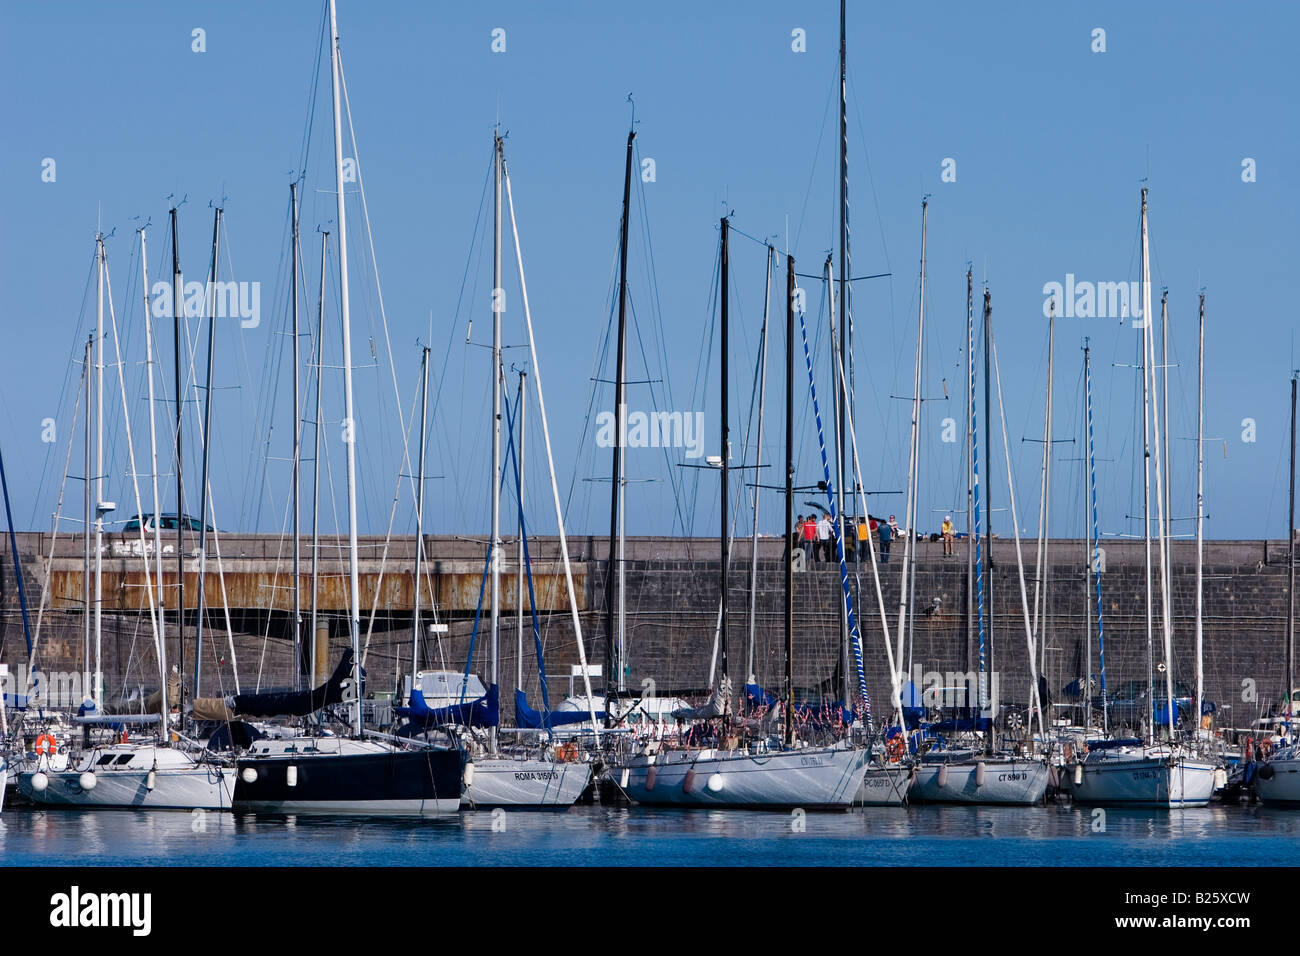 Yachts are seen in the bay of Catania, Sicily, Italy - Stock Image